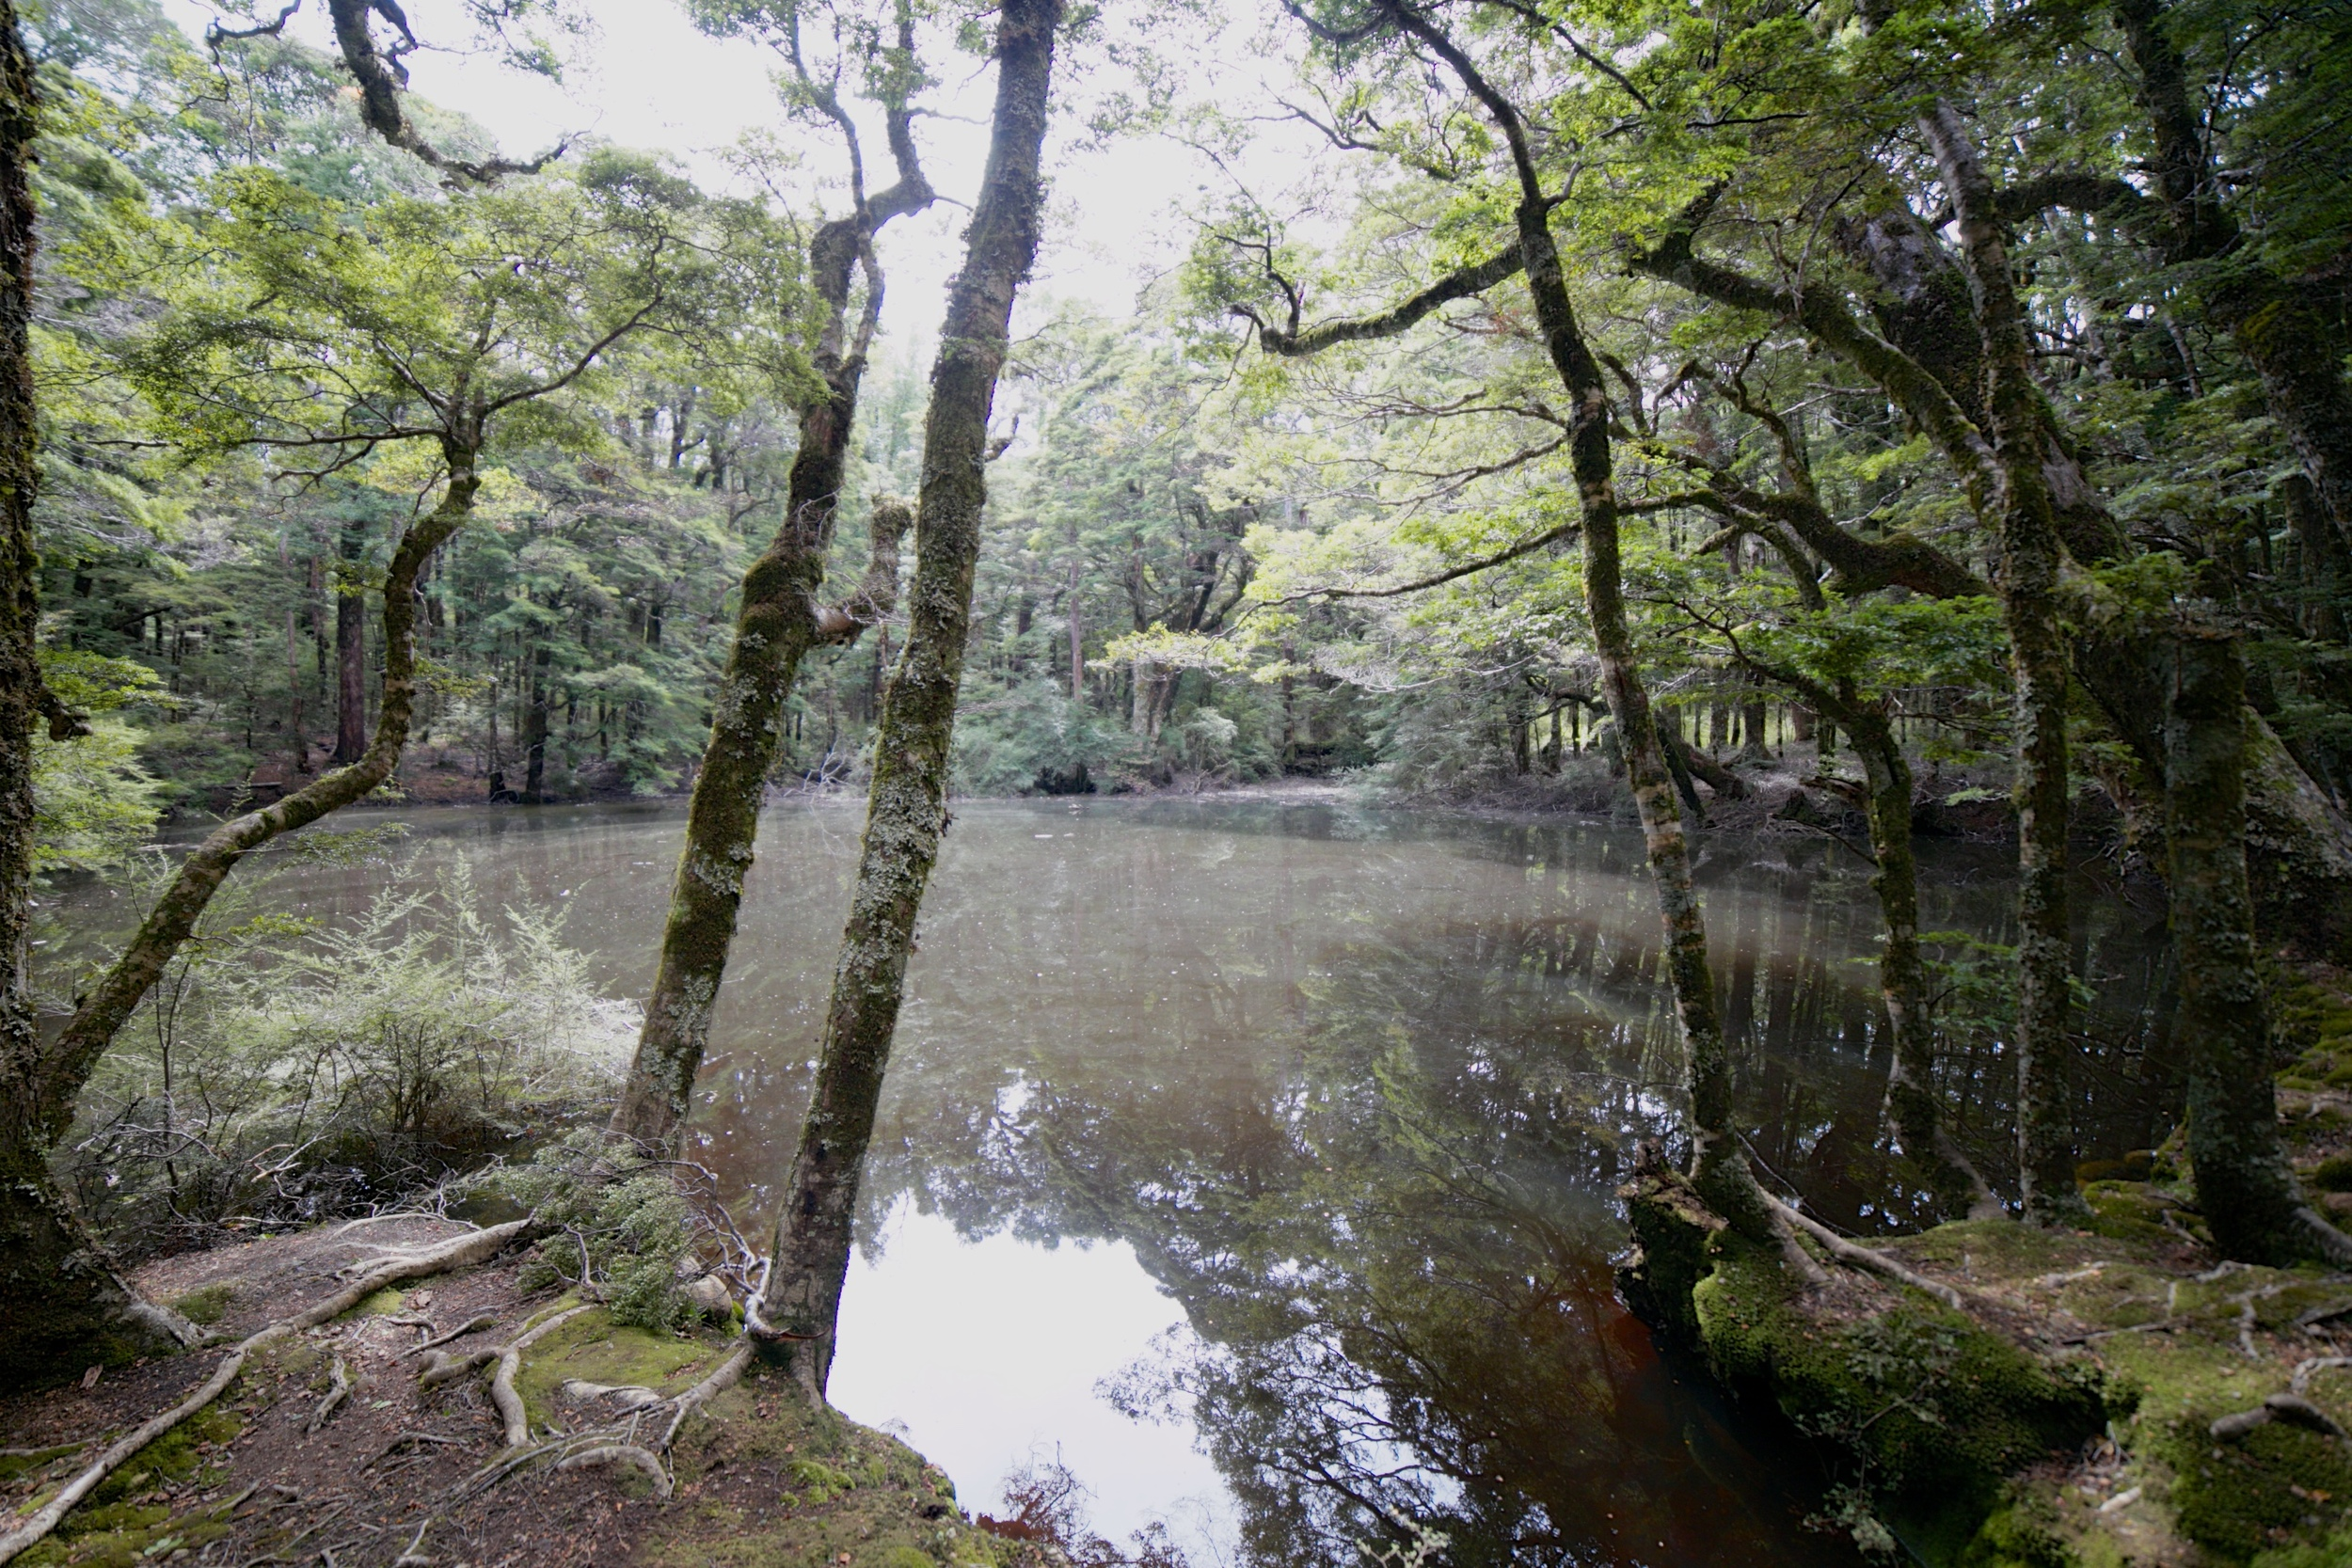 A mirror mere - a small enchanted pool in Caanan Downs forest.